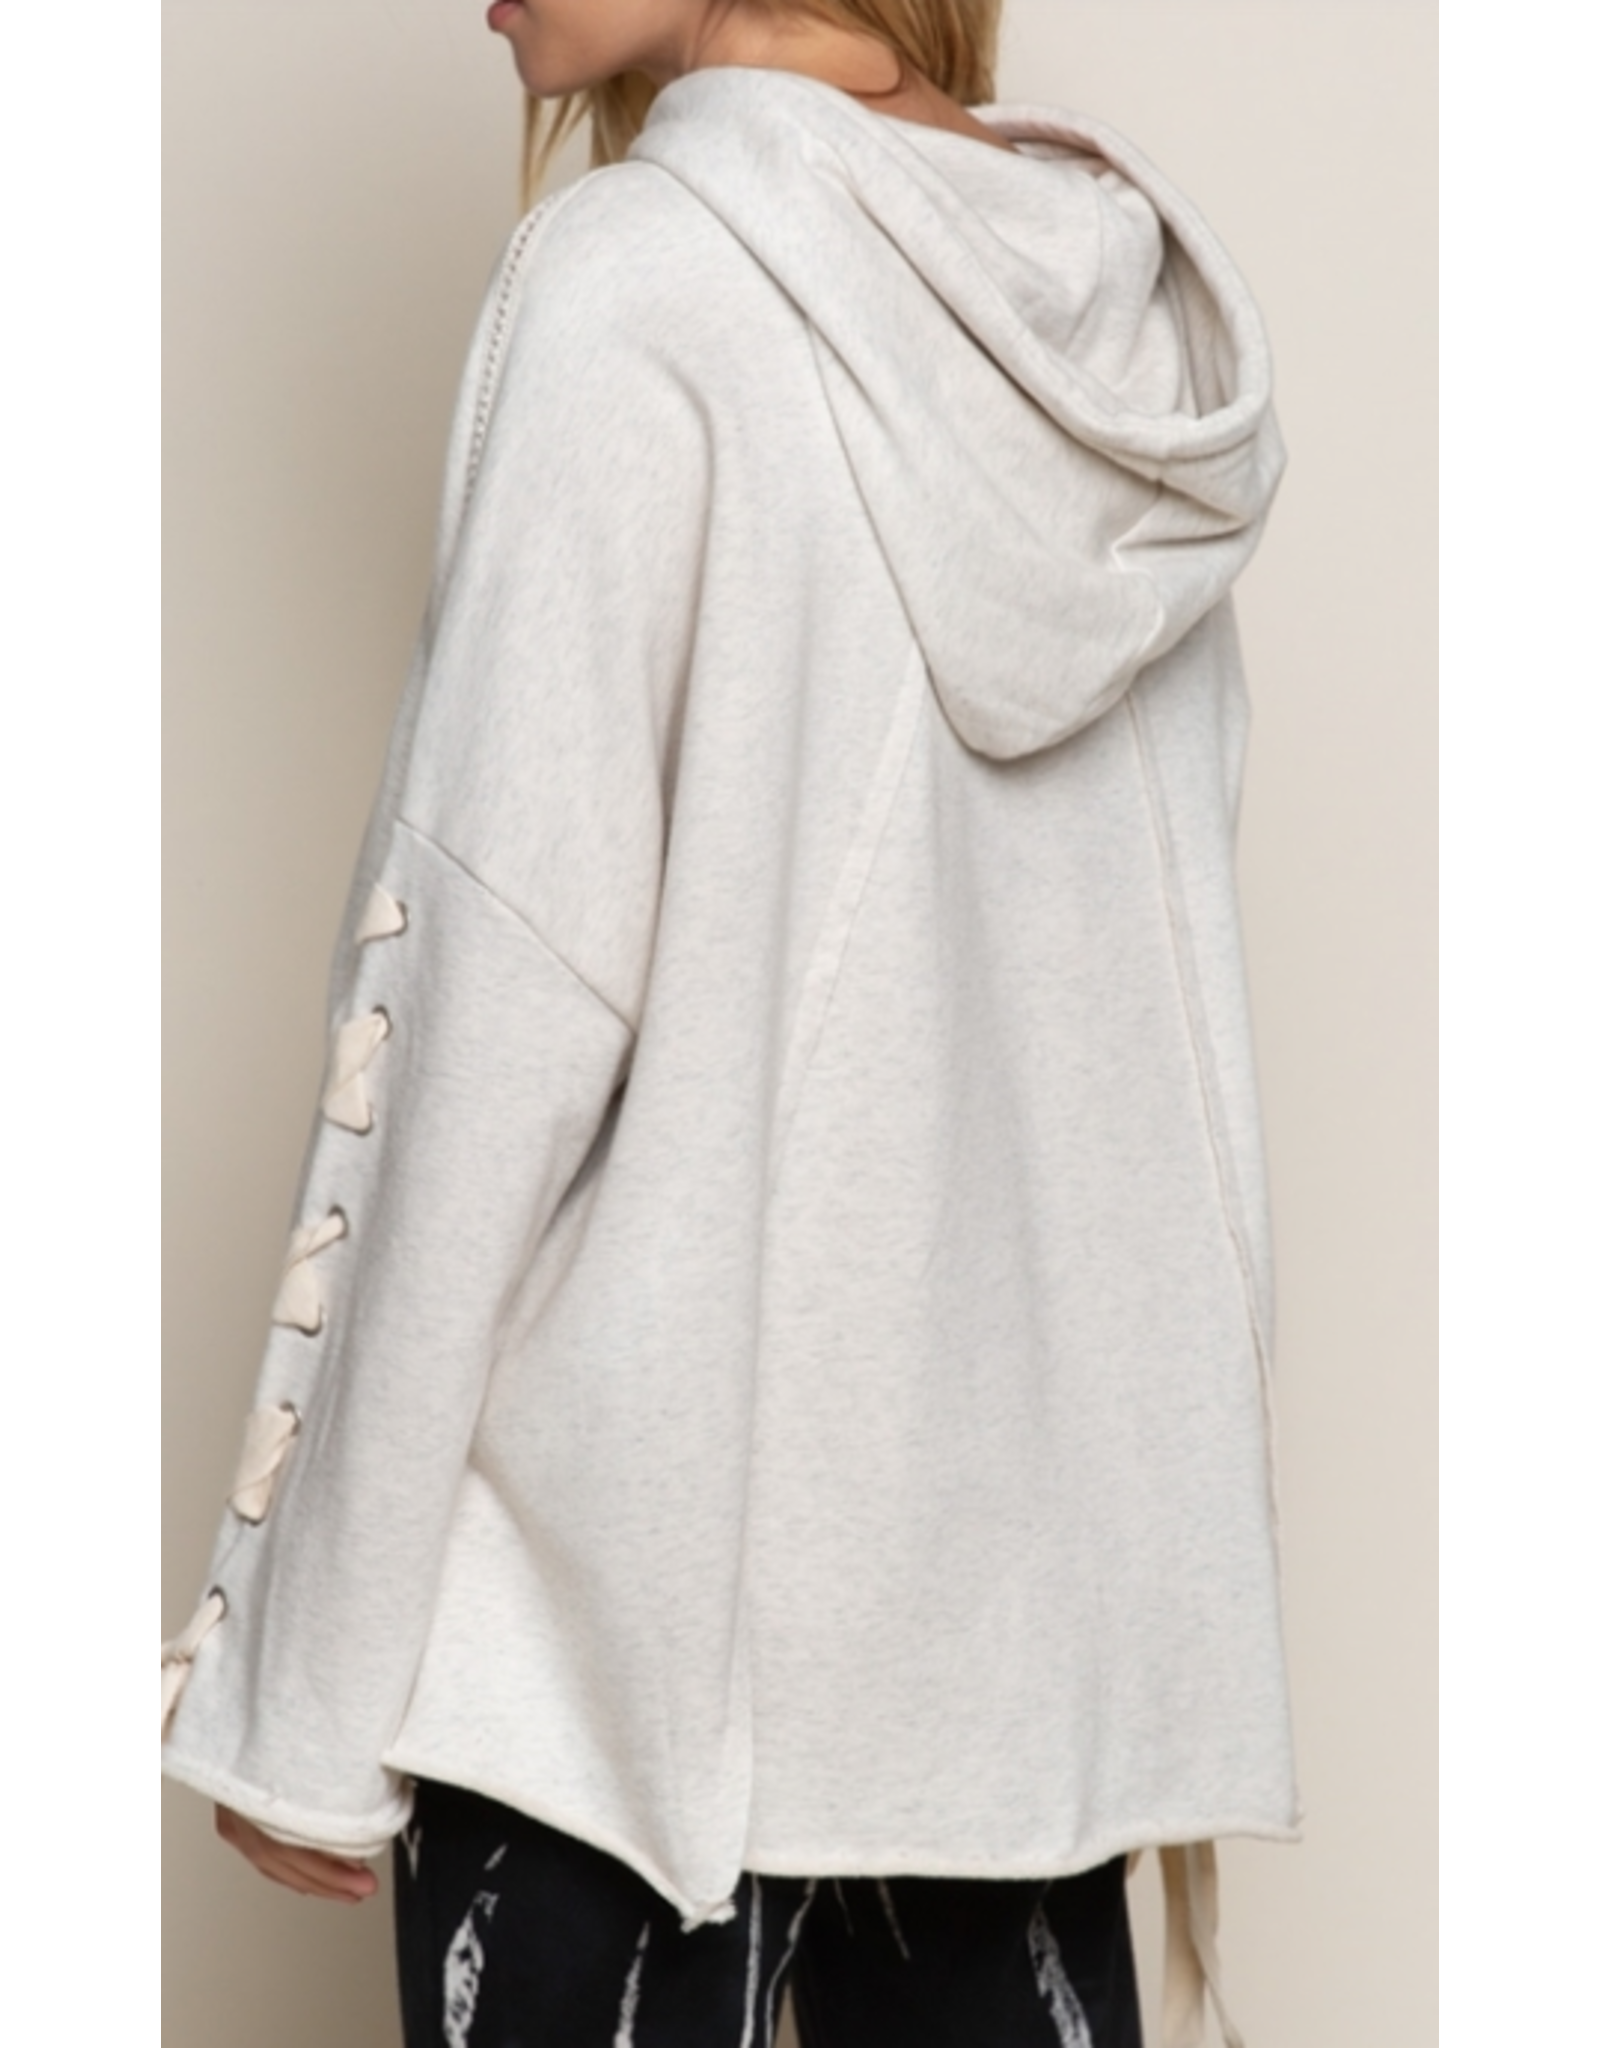 Terry Hoodie Top with Drawstring Tie